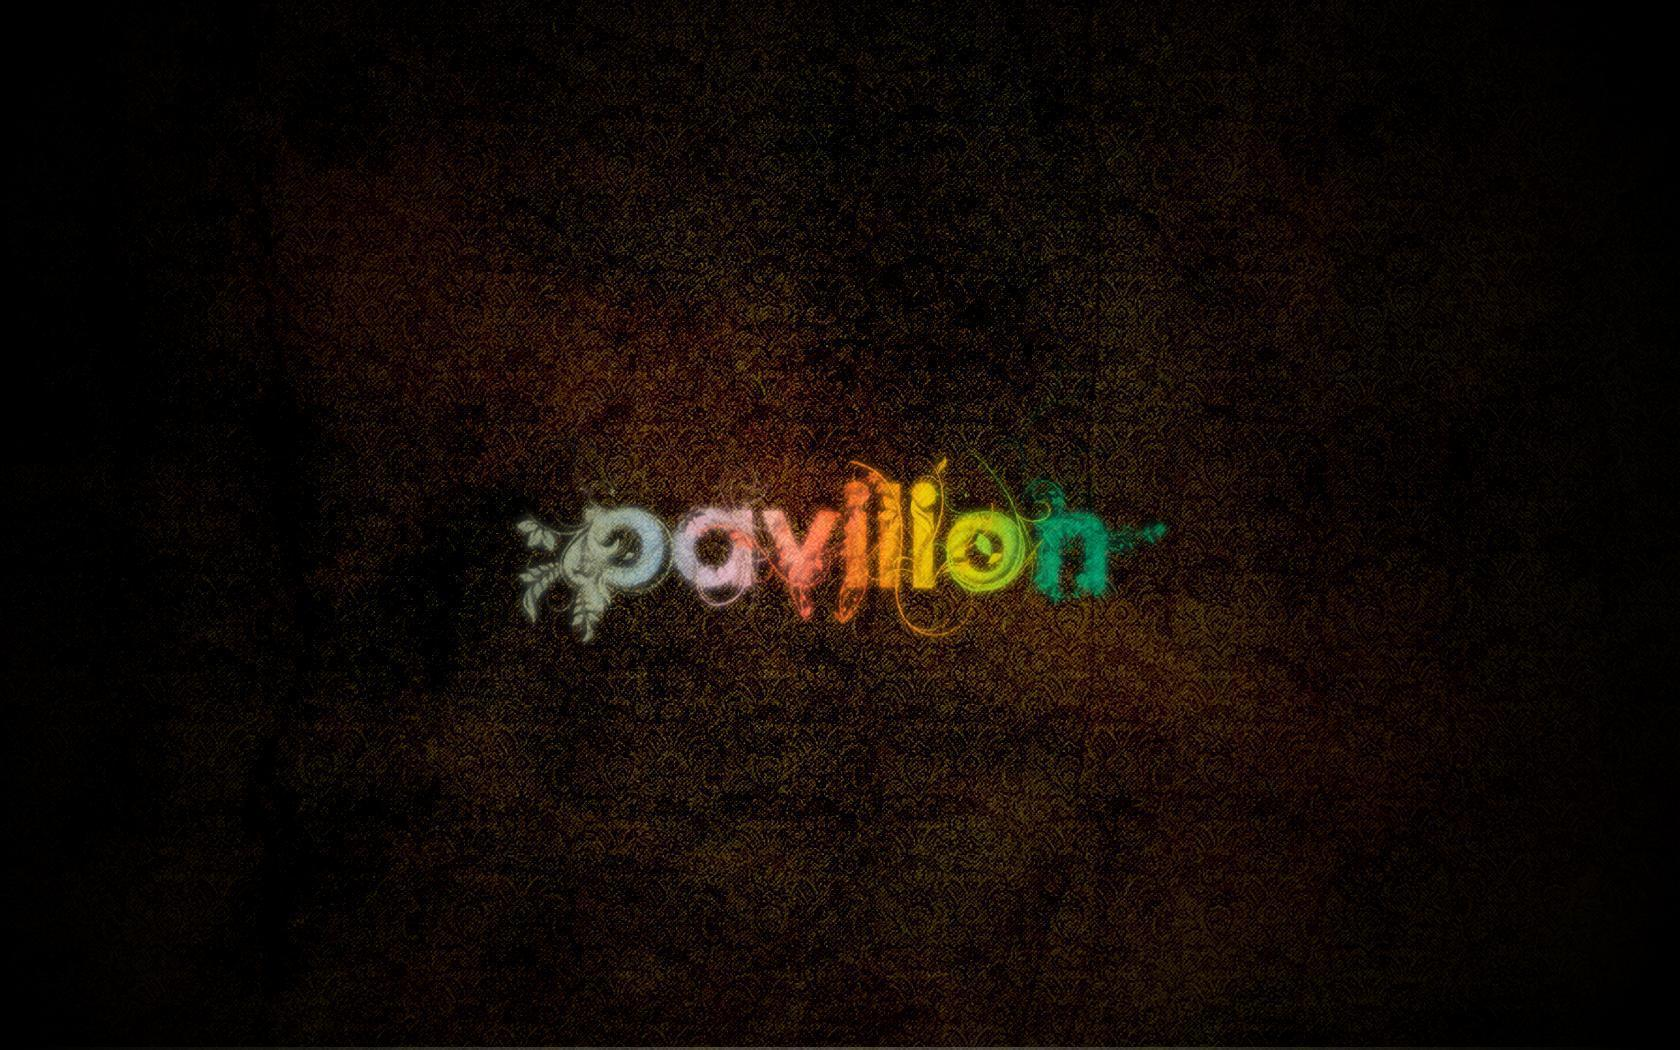 HP Pavilion Wallpapers 1680x1050